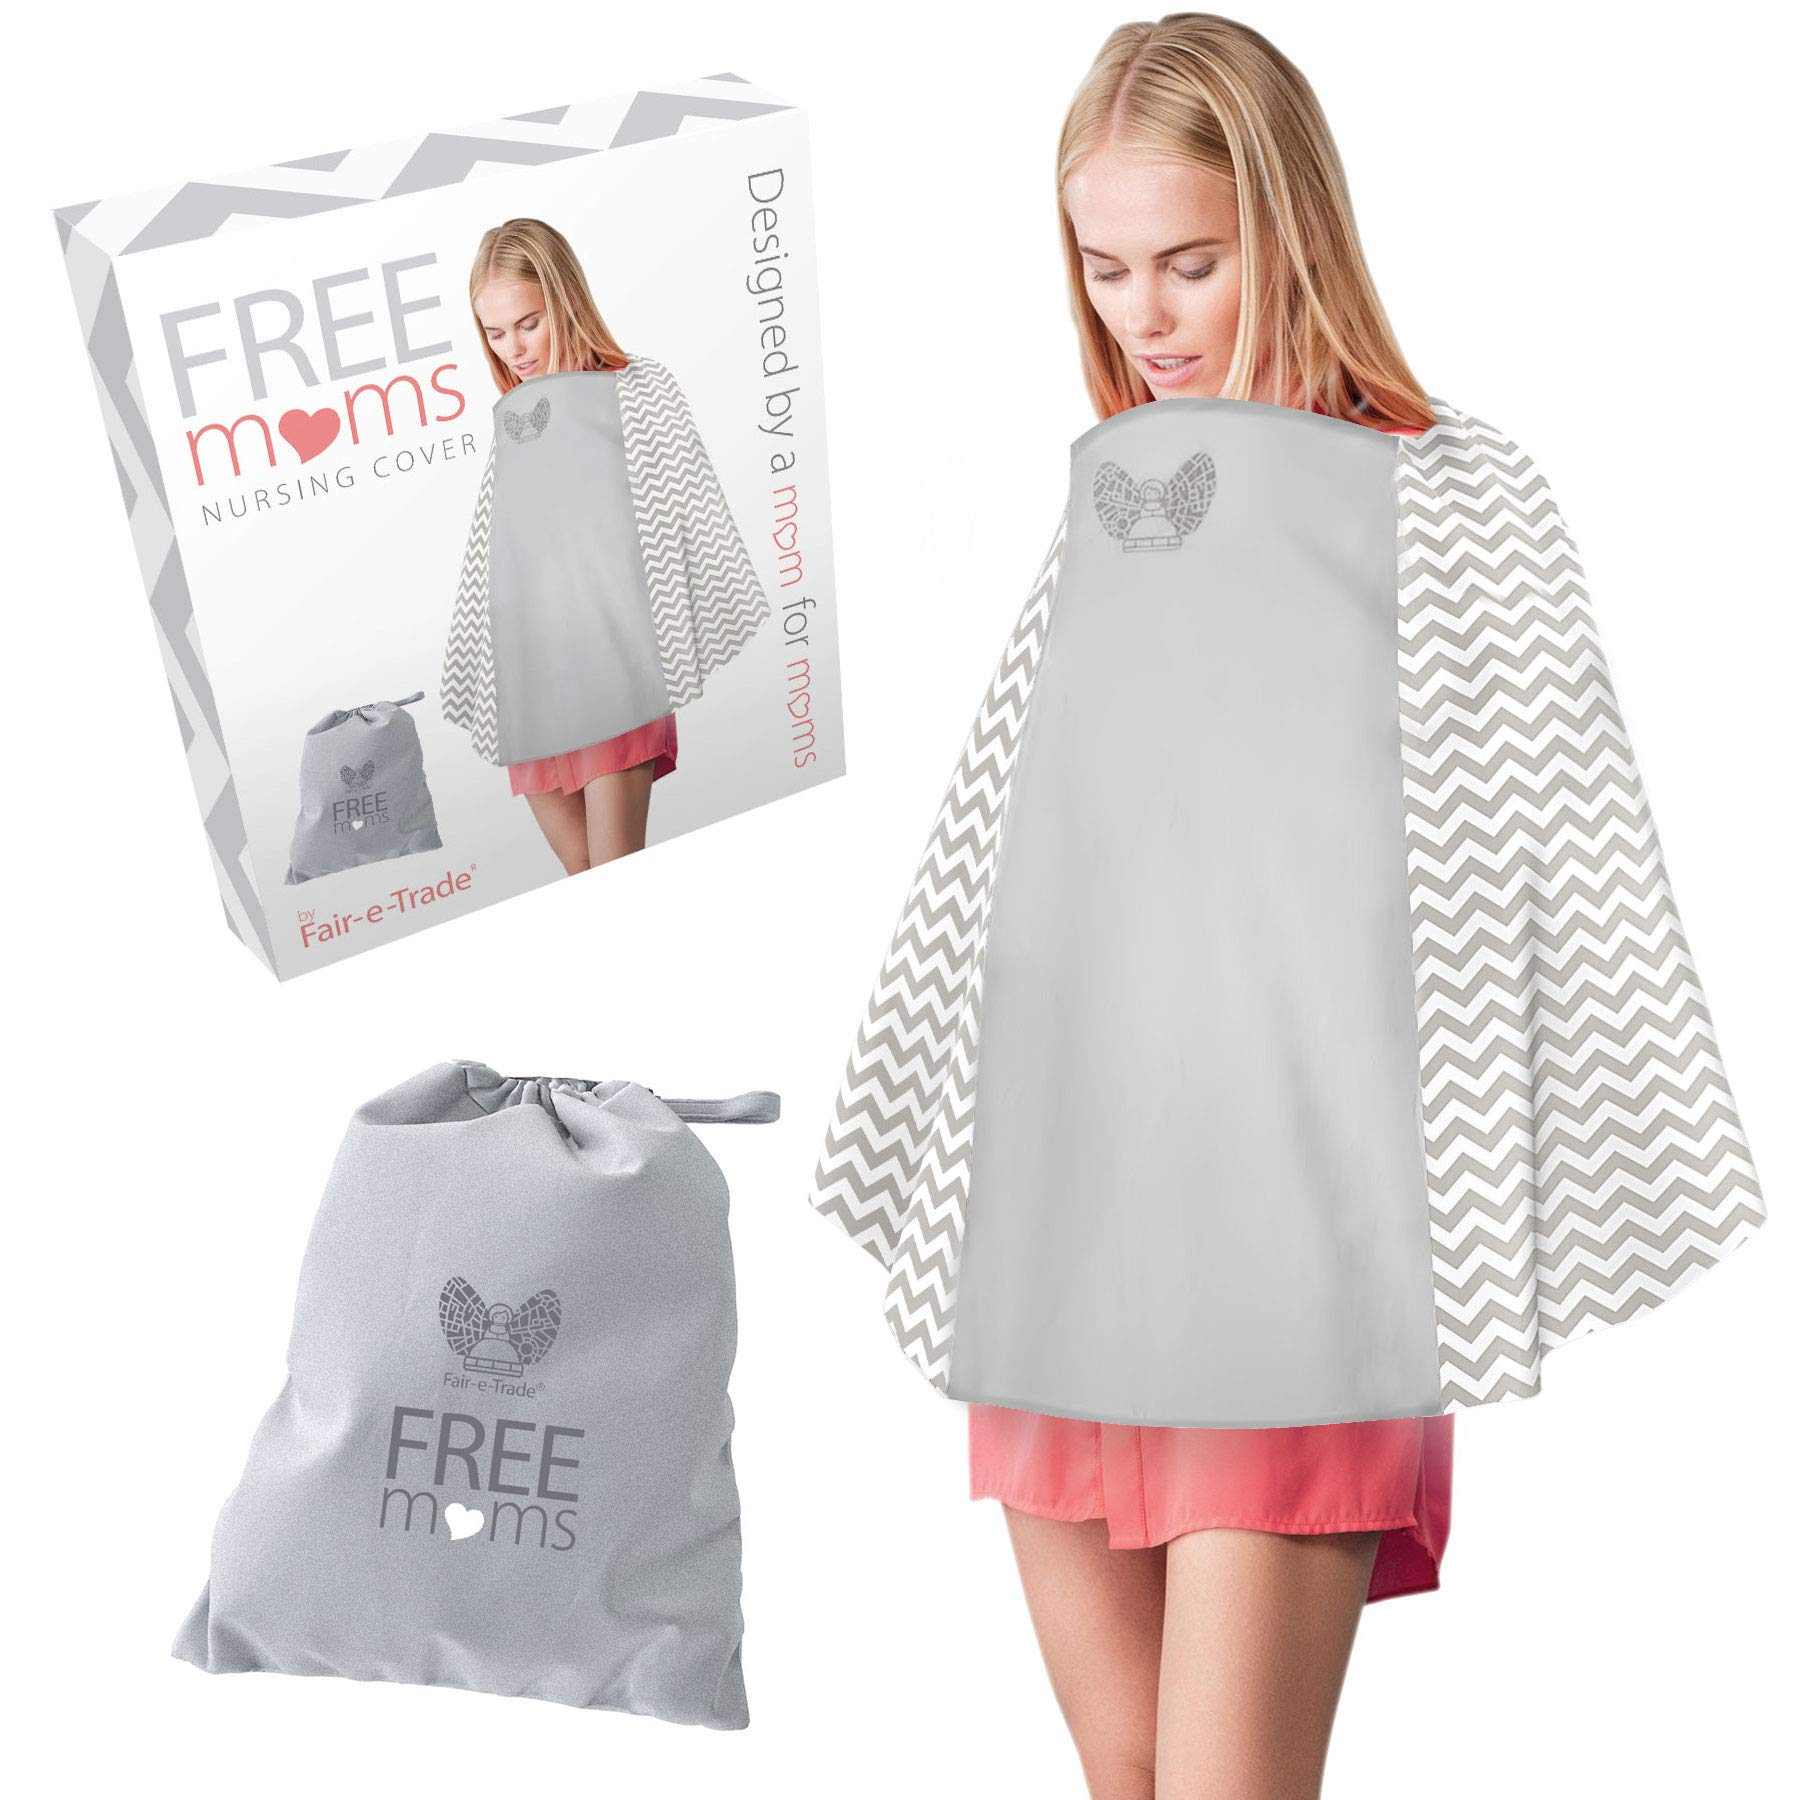 360° Nursing Cover Poncho Style - Rigid Neckline Breastfeeding Cover with Carry Bag - Covers Fully - Soft Breathable Cotton to Fit All for Discreet Feeding in Public by Fair-e-Trade